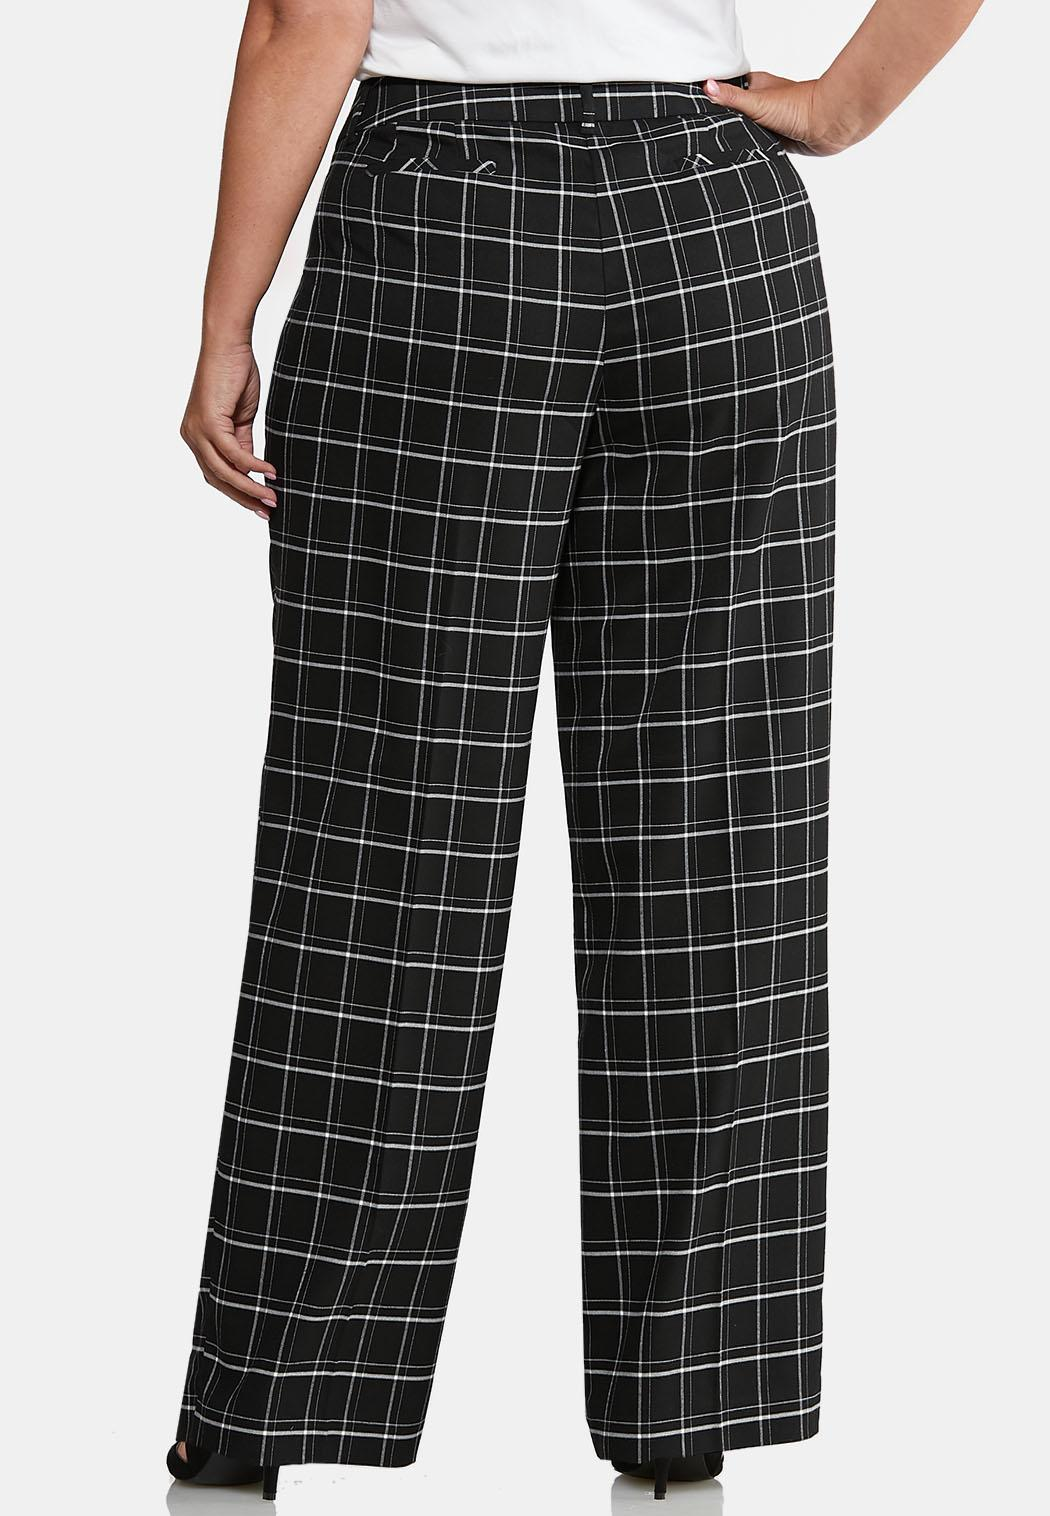 Plus Size Curvy Plaid Trouser Pants (Item #43996452)